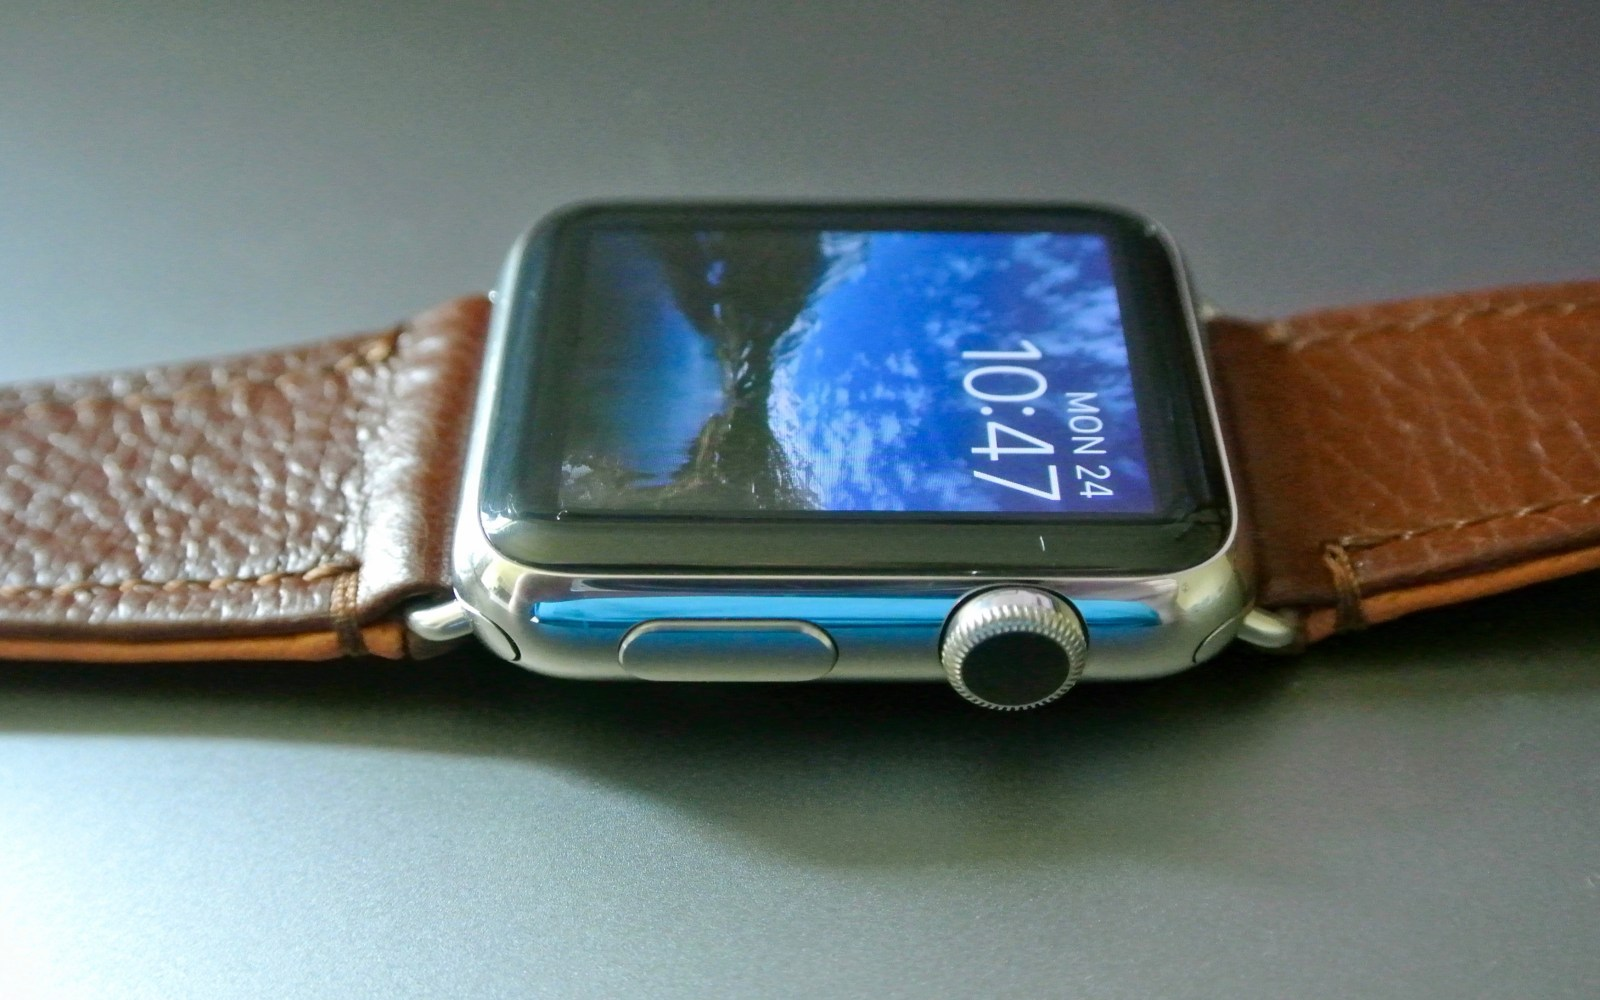 Review: Pad & Quill's Classic Band dresses Apple Watch in rugged, American leather